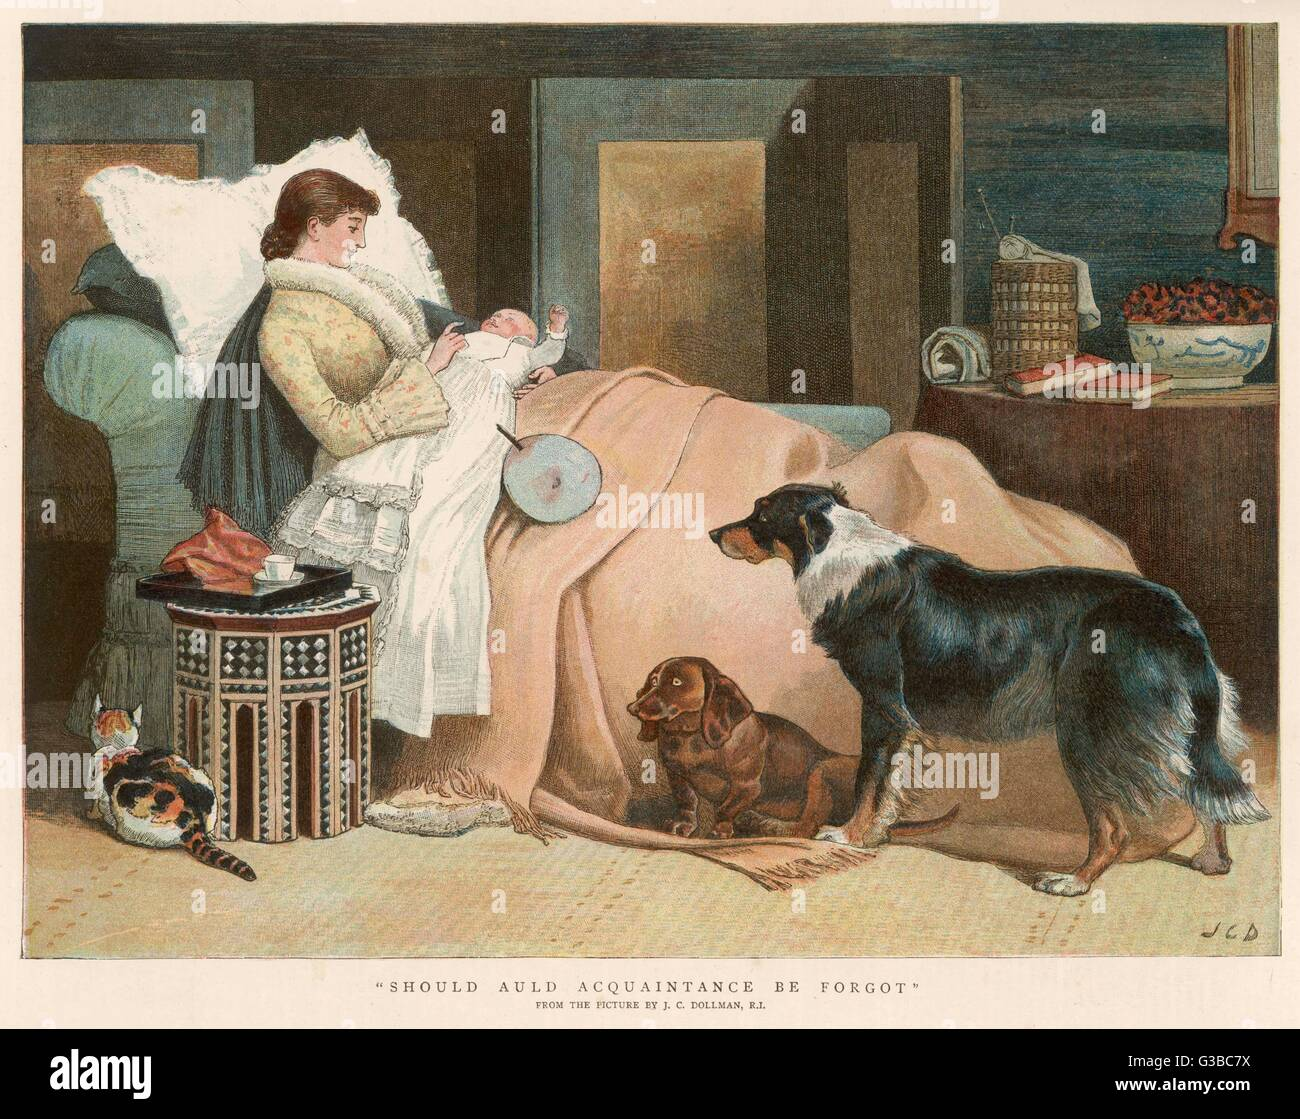 A new mother sits up in bed  nursing her baby, while two  dogs and a cat feel somewhat  neglected.      Date: 1888 - Stock Image